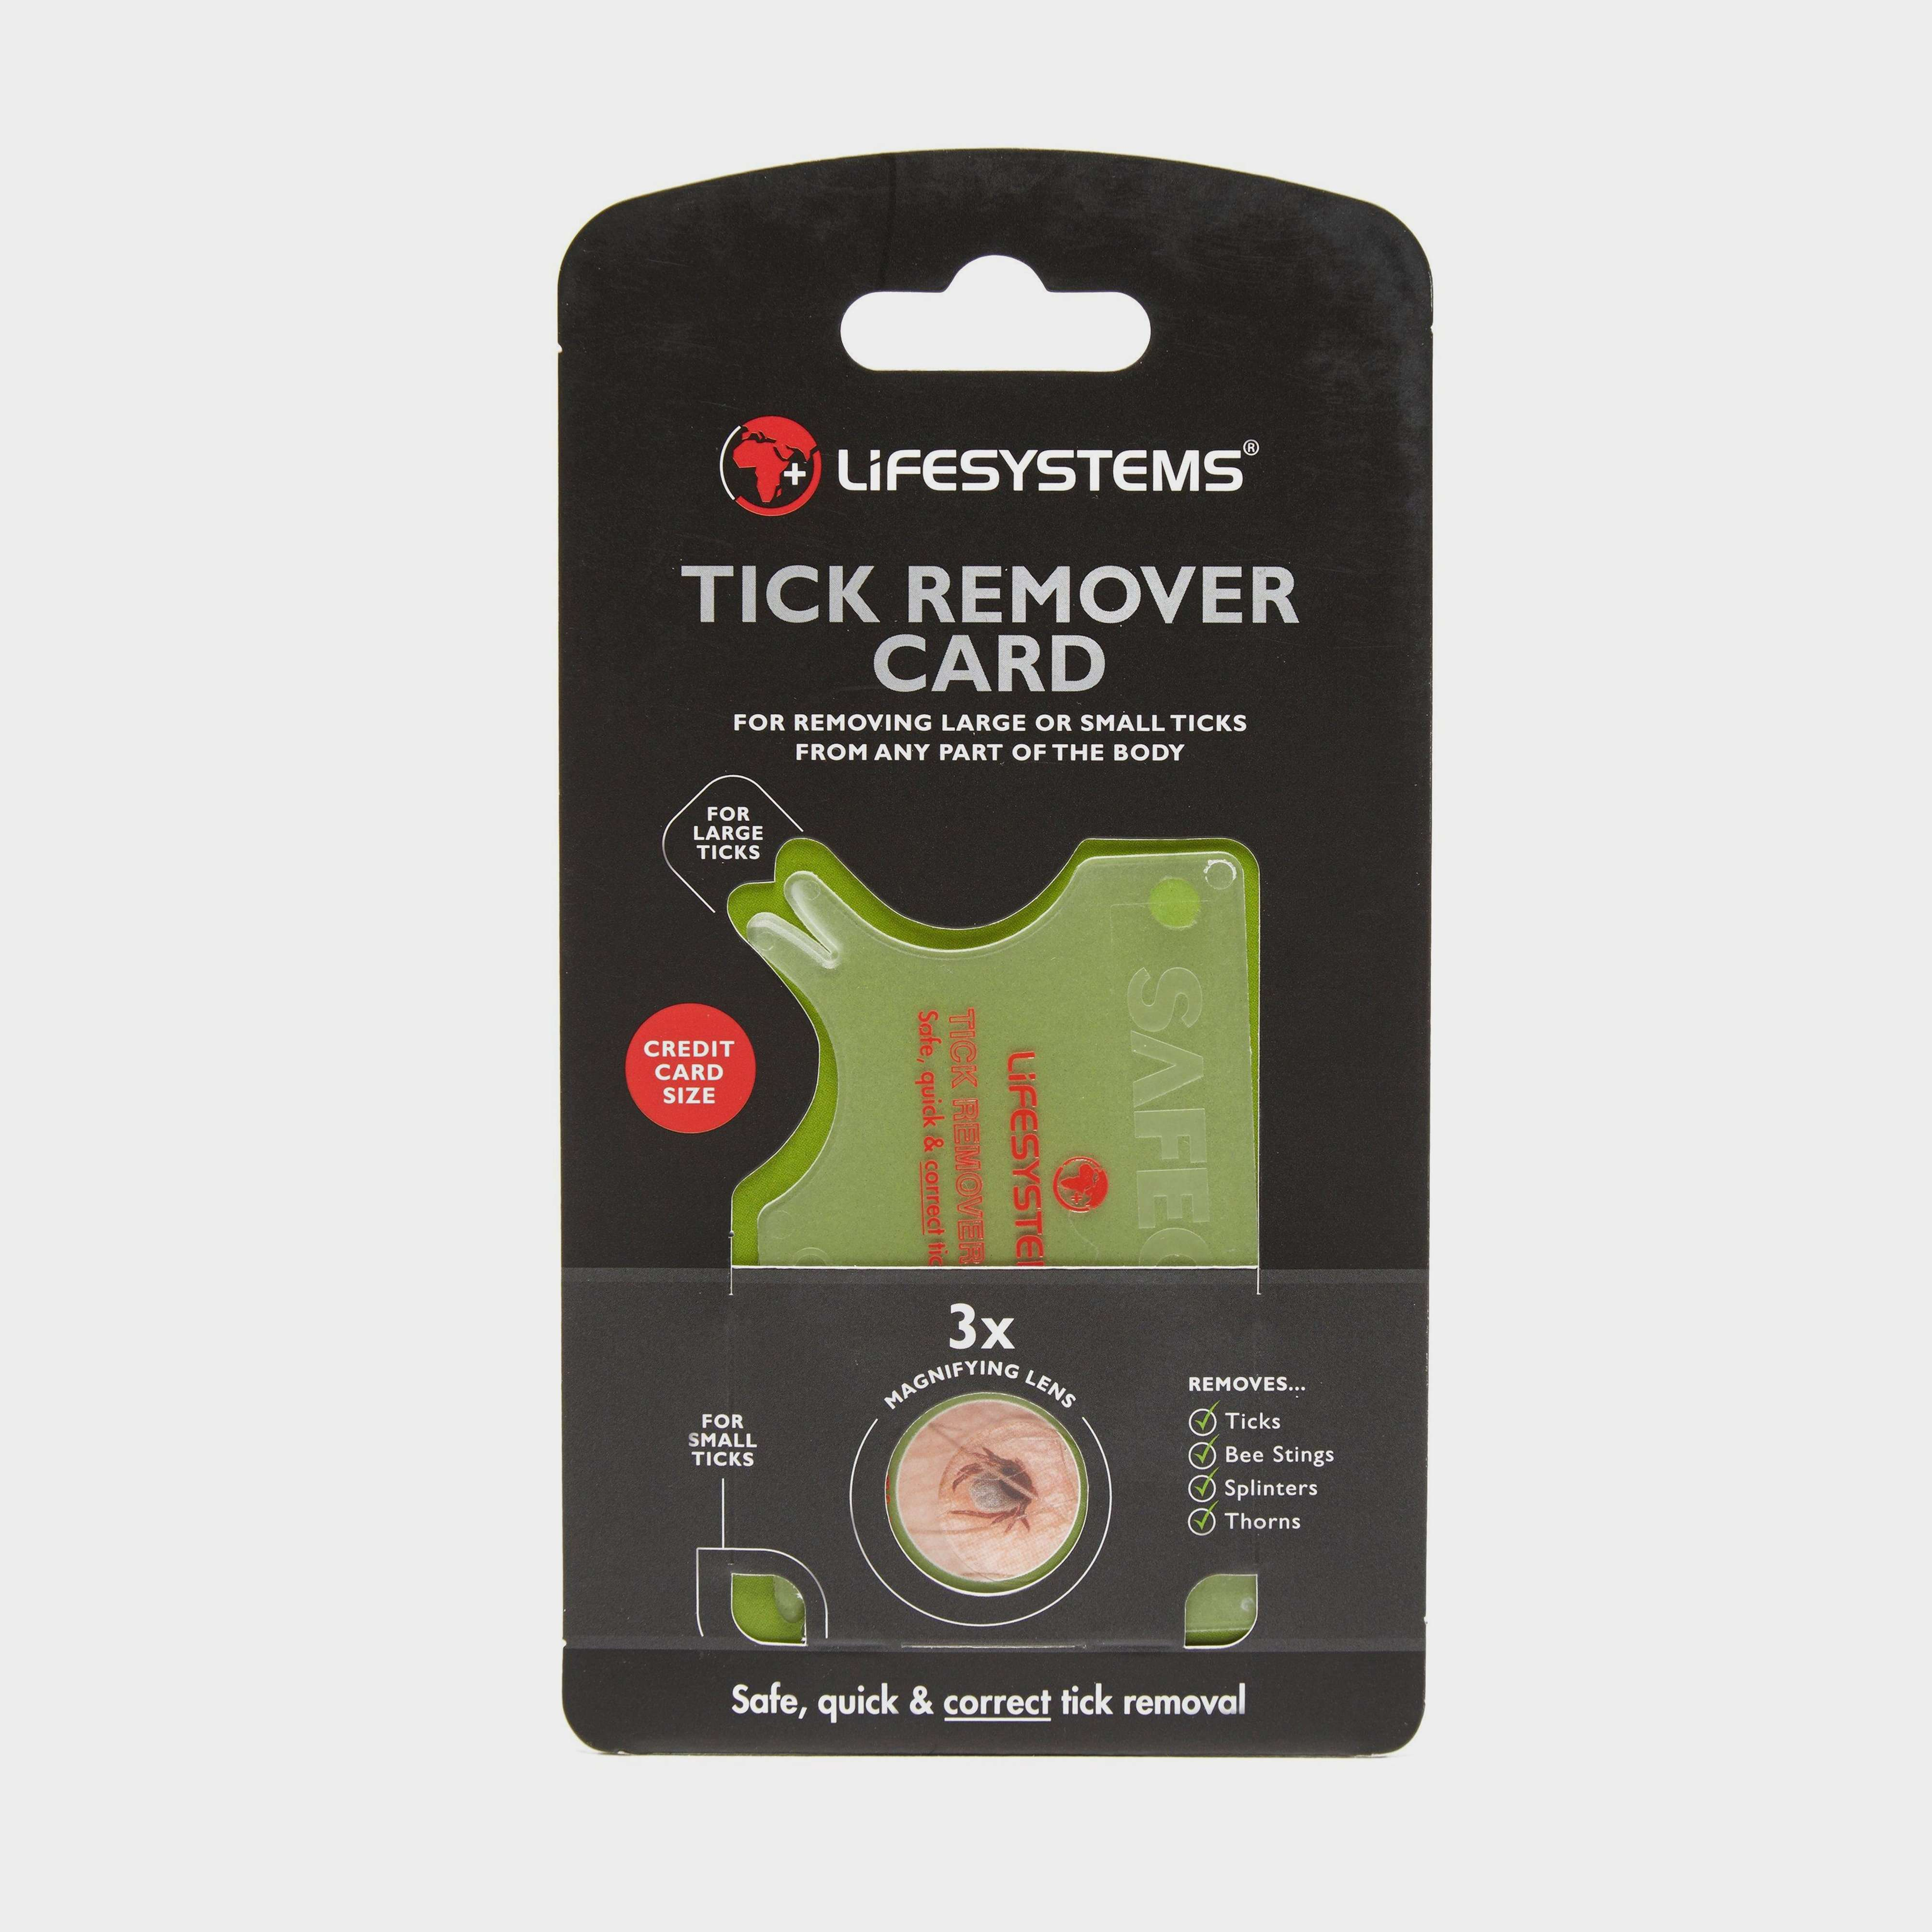 LIFESYSTEMS Tick Remover